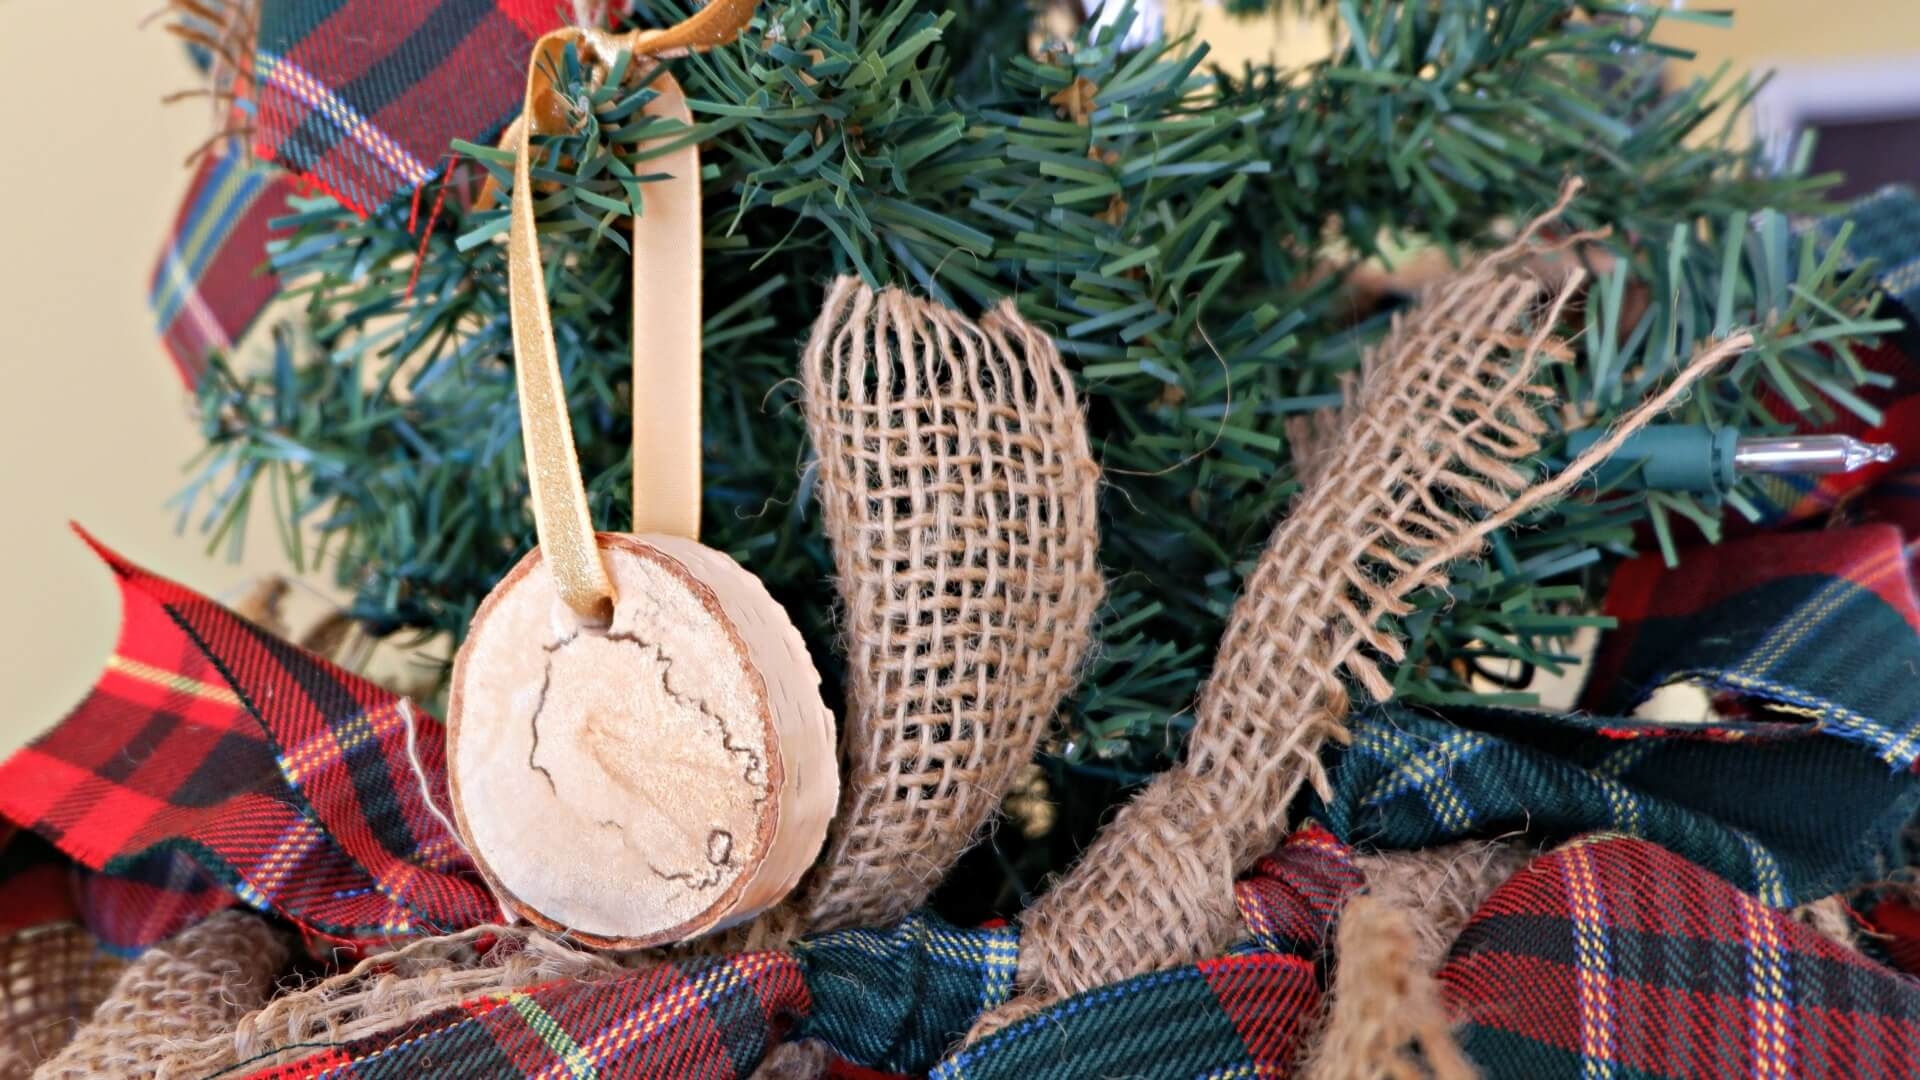 Scottish Pioneer Inspired Christmas Tree MyNBChristmasTree New Brunswick pickle planet birch wood ornament